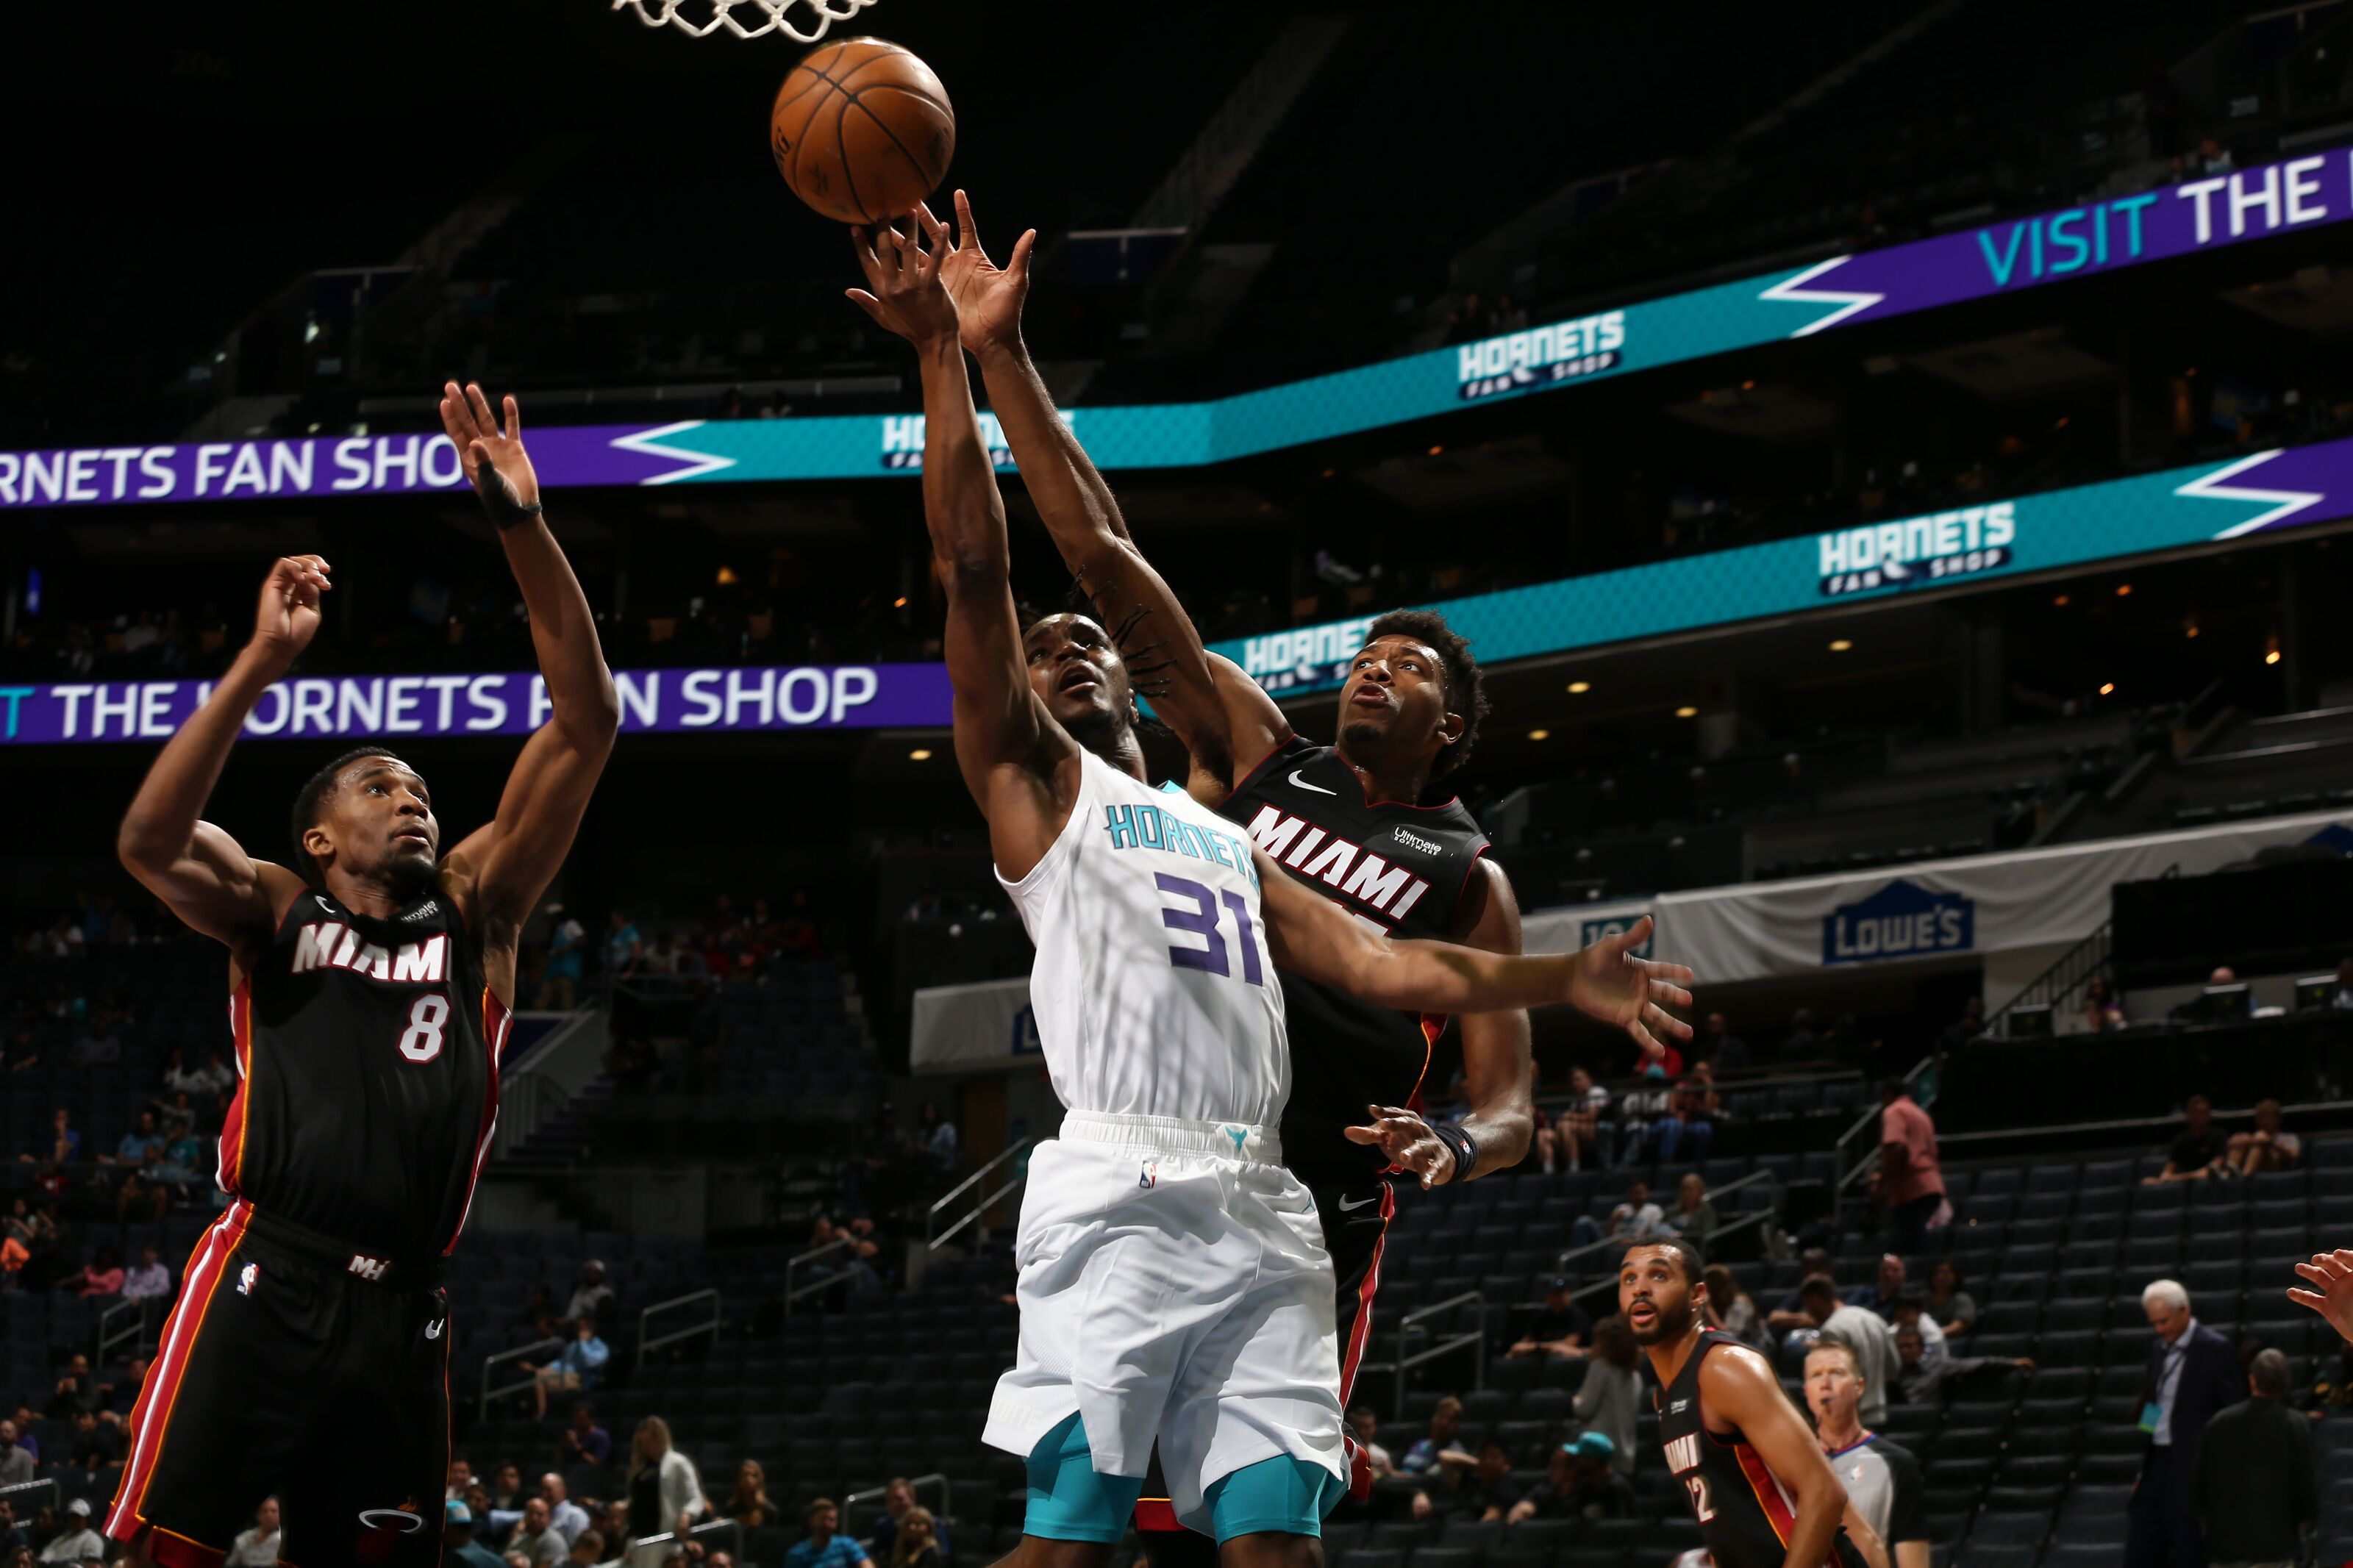 Miami Heat scouting the enemy: Charlotte Hornets